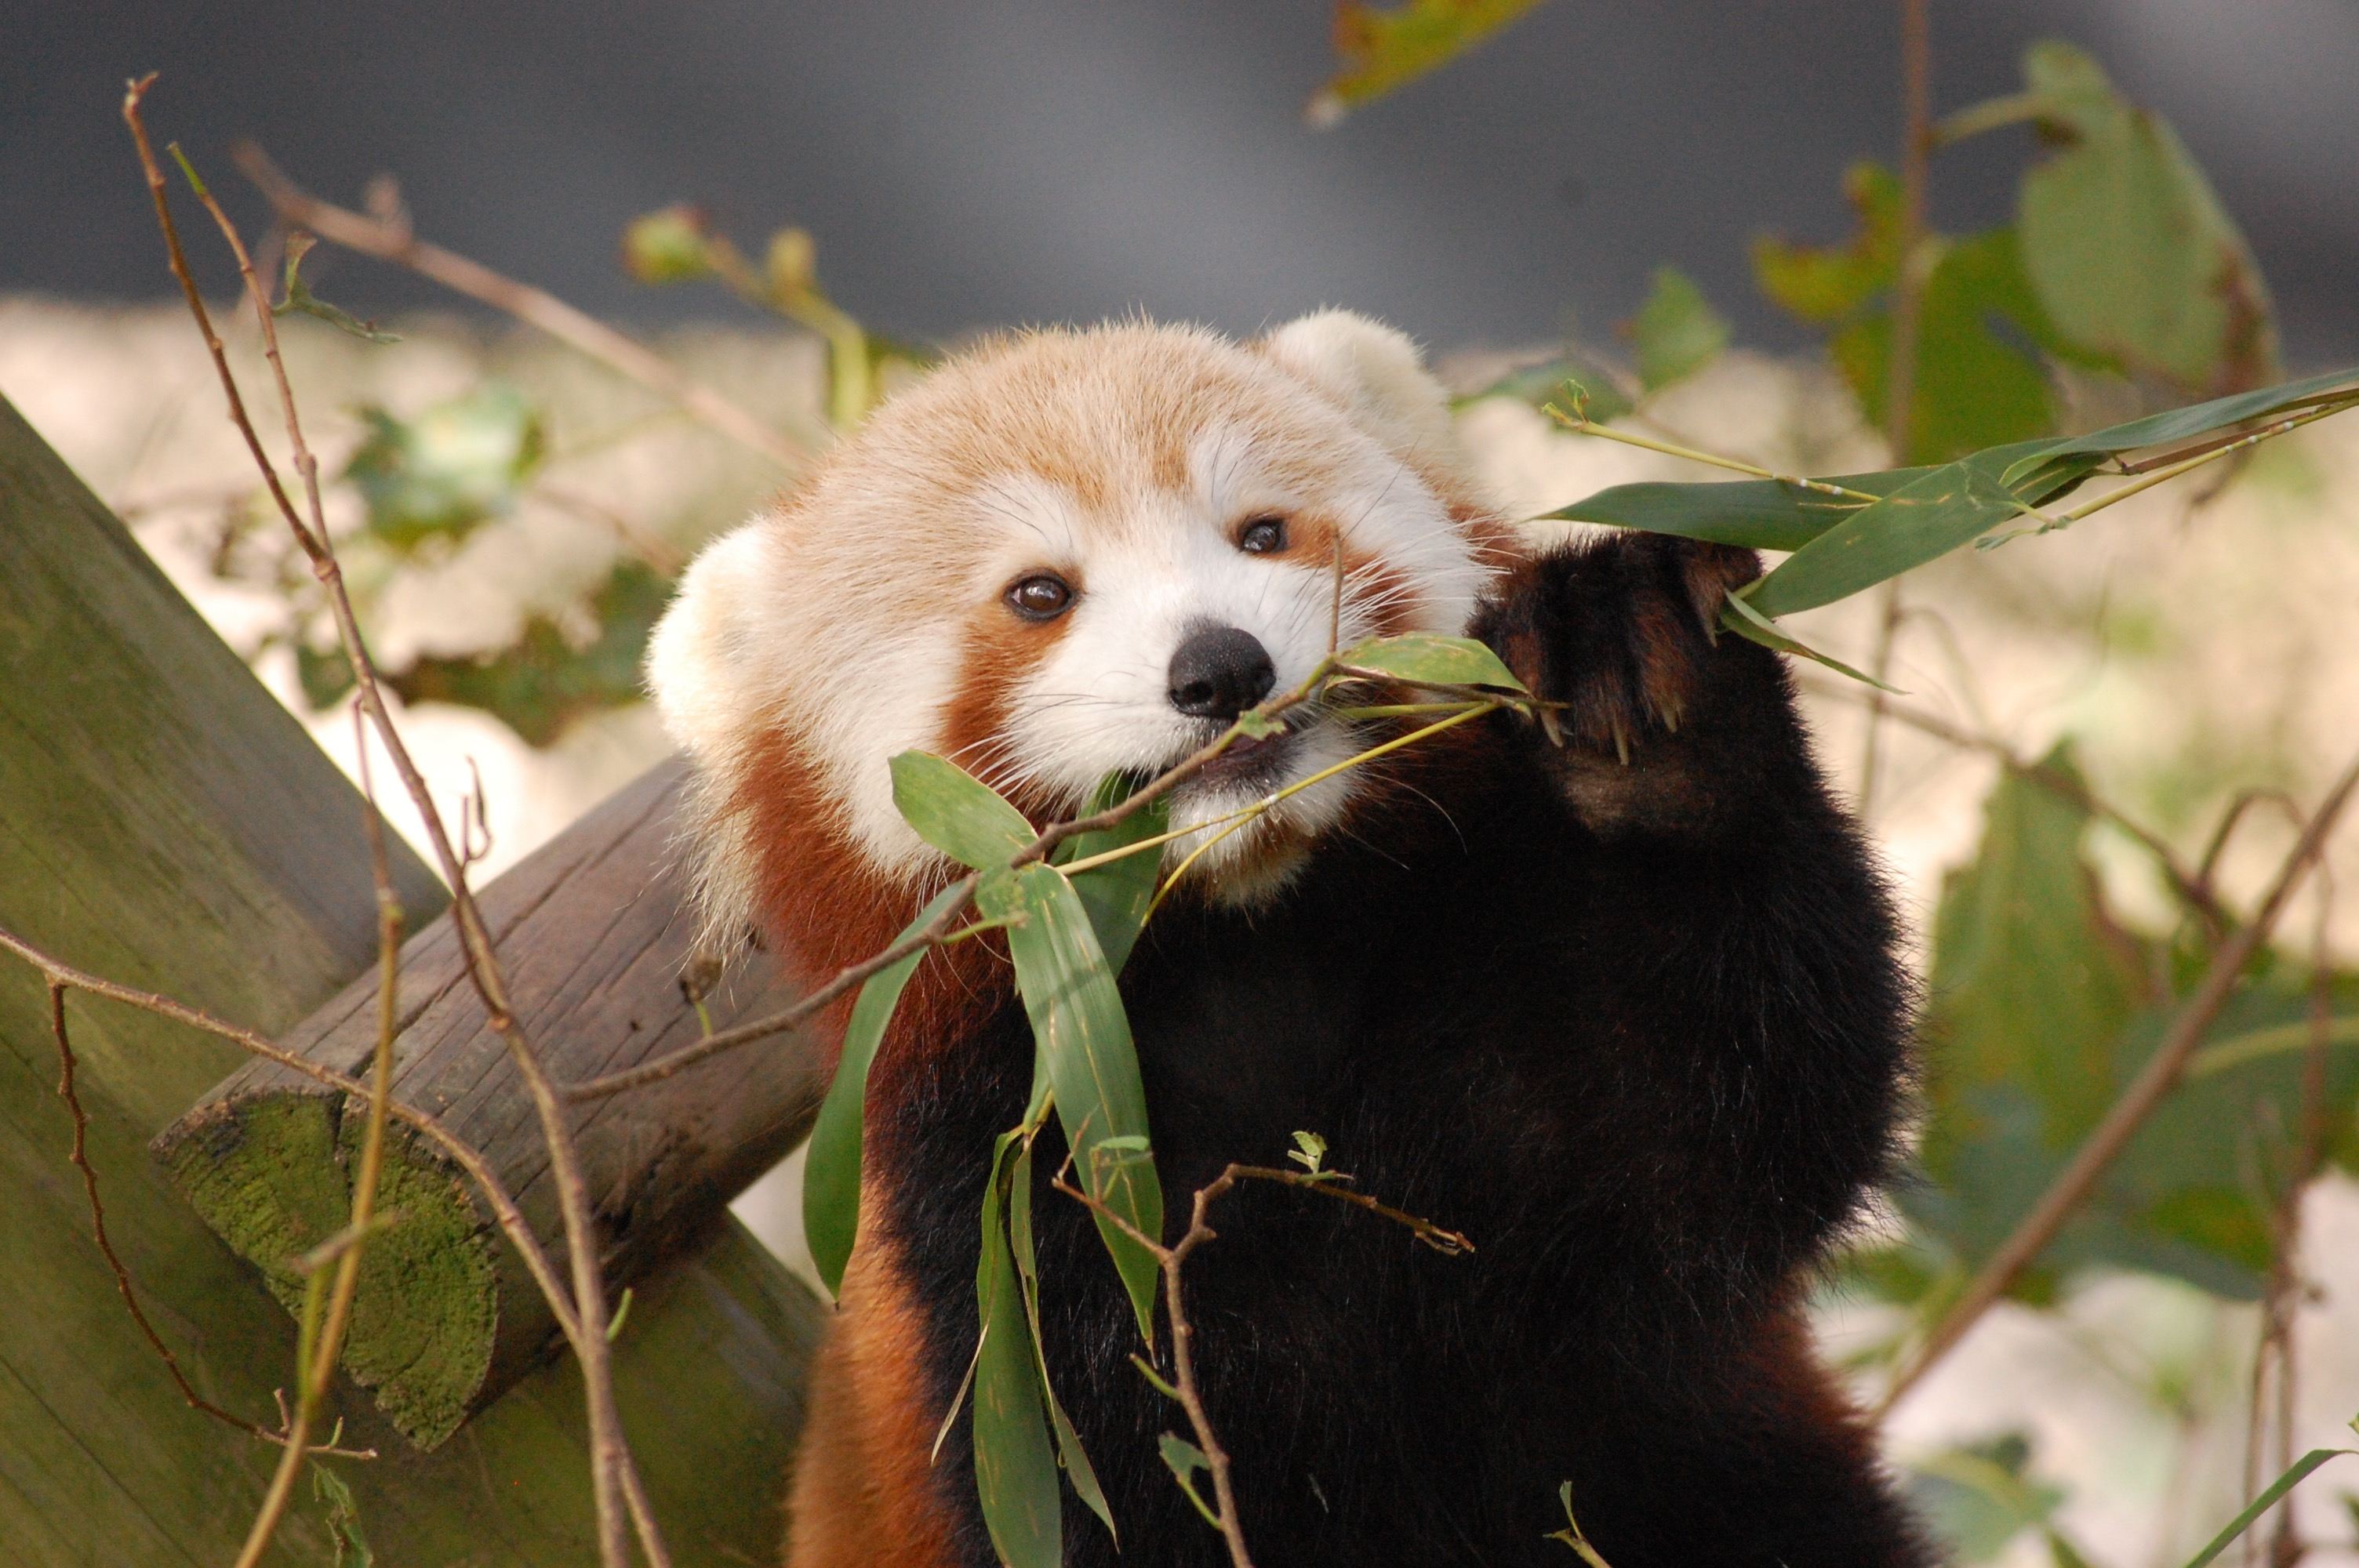 Virginia Zoo Red Panda Is Missing From Habitat Virginia